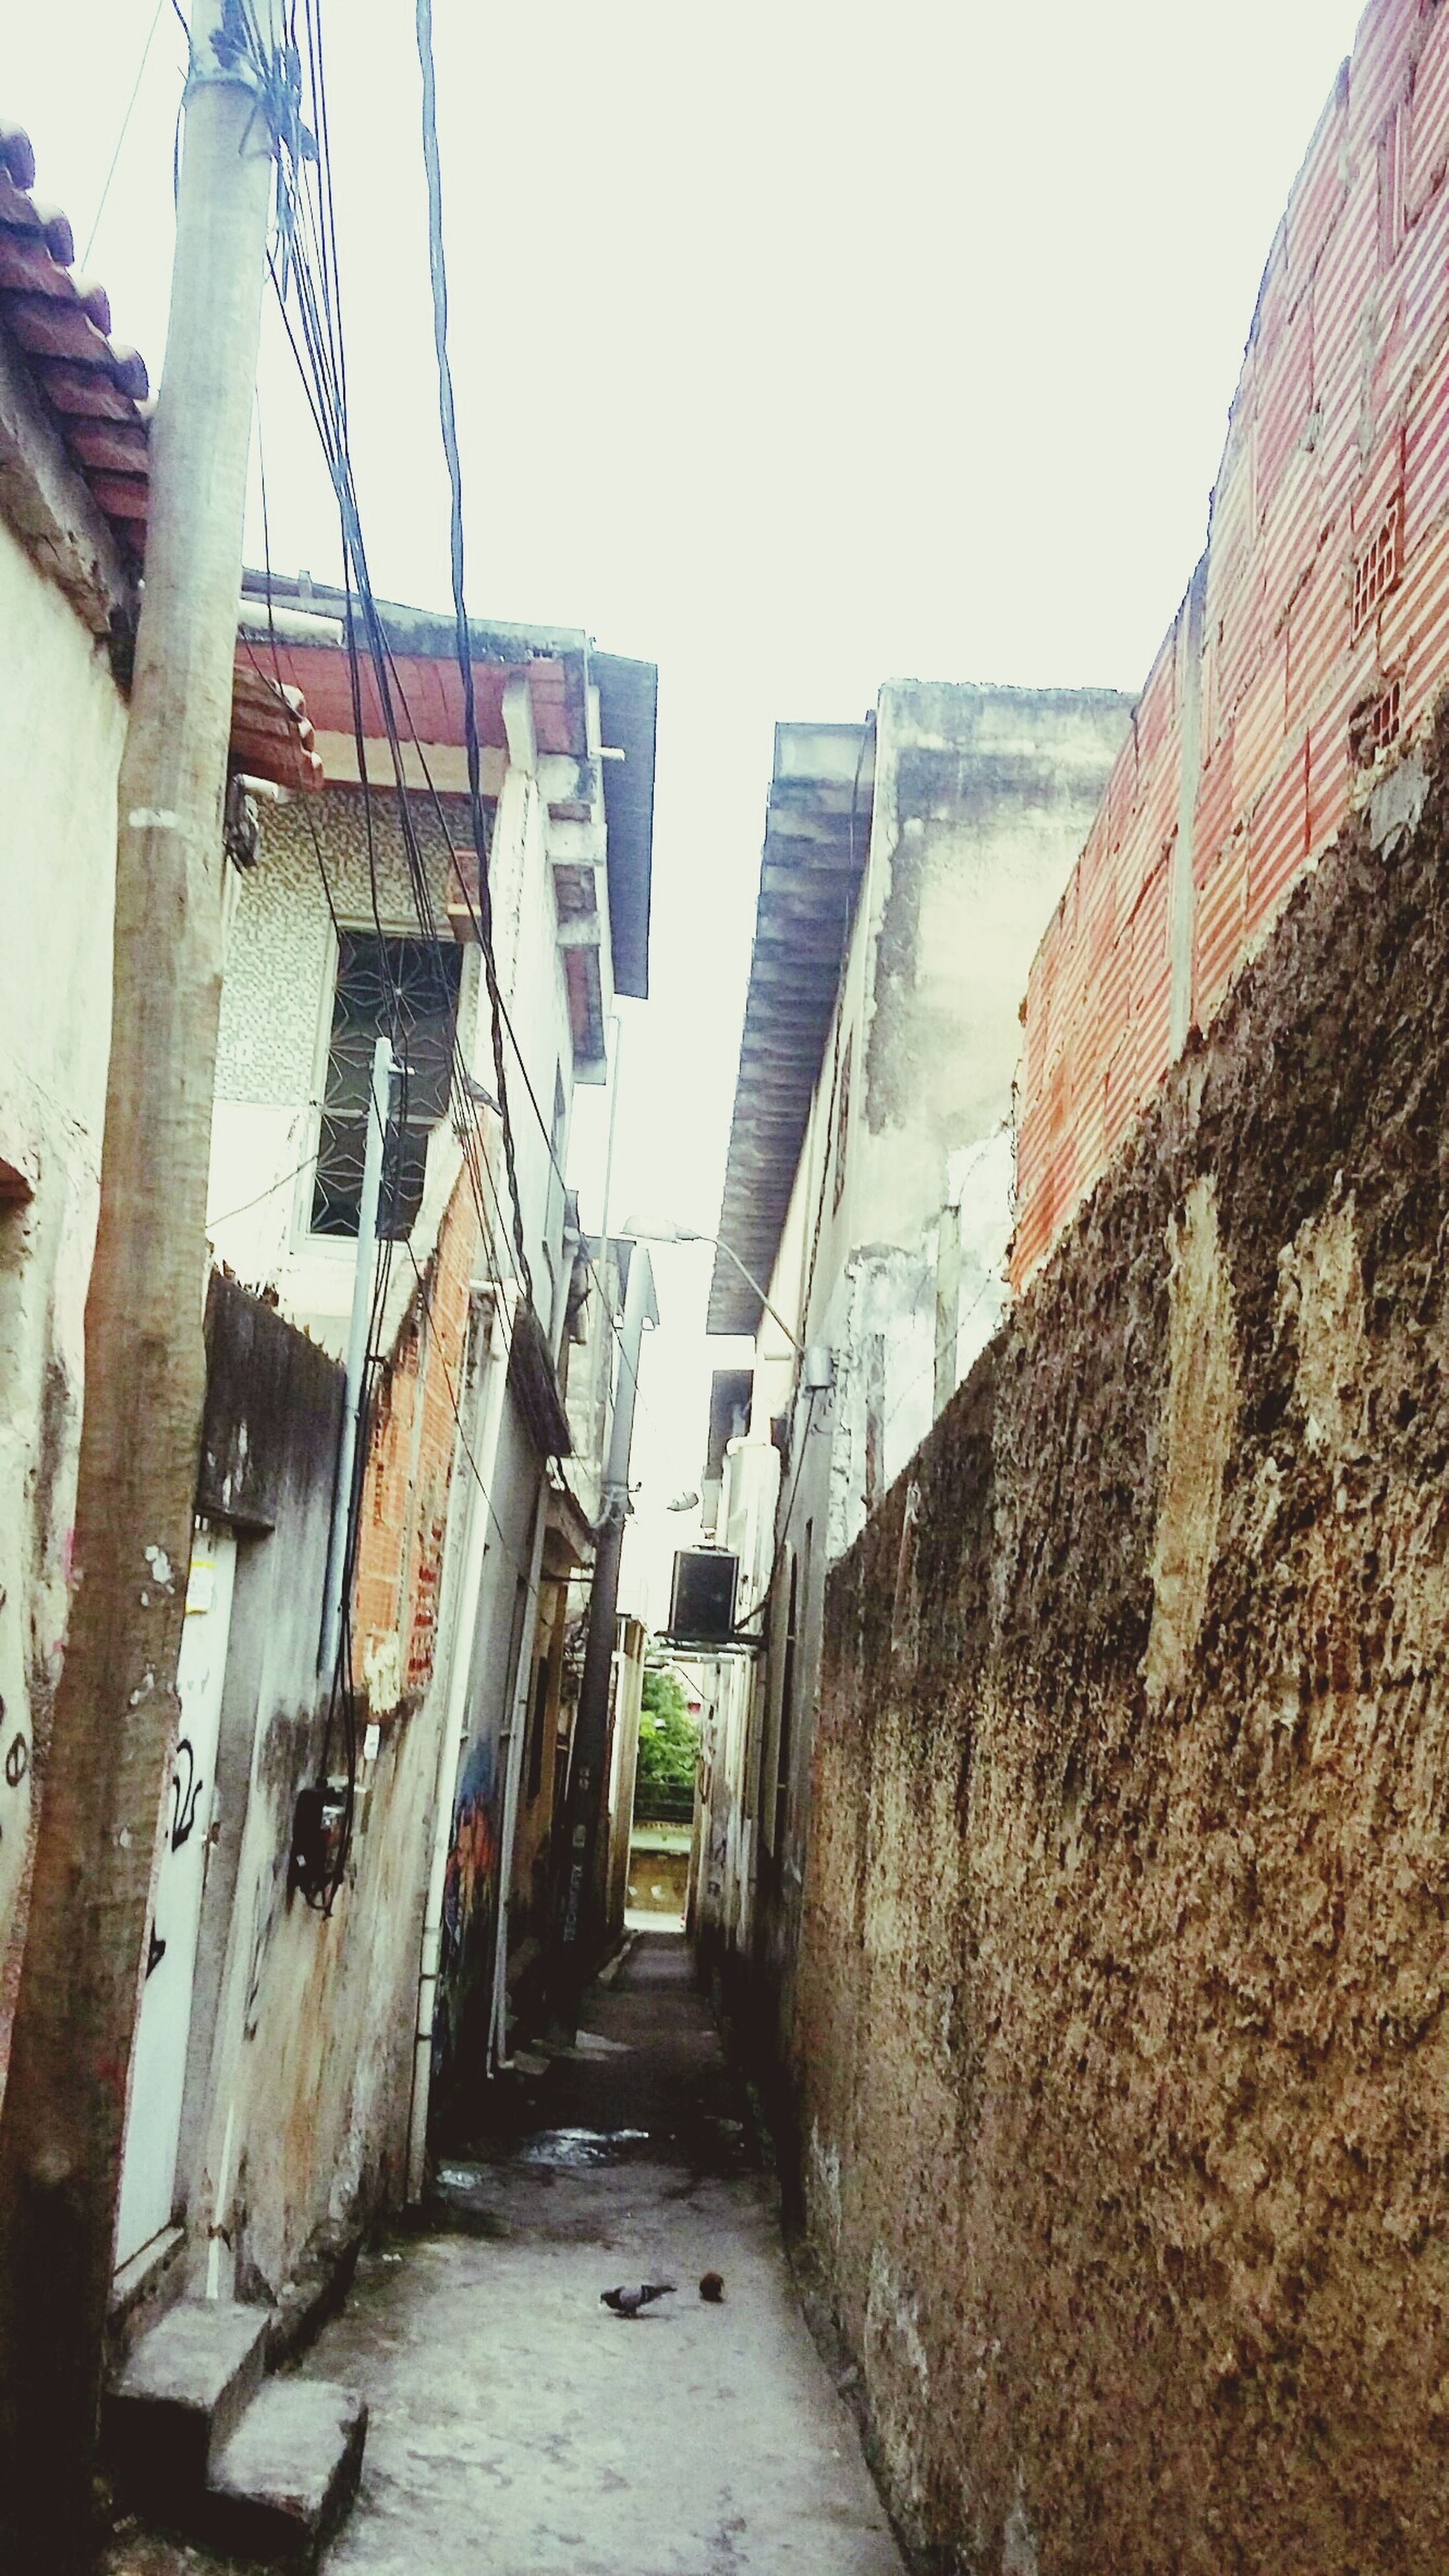 architecture, building exterior, built structure, the way forward, residential structure, residential building, building, street, clear sky, narrow, house, diminishing perspective, alley, city, day, sky, wall - building feature, outdoors, road, vanishing point